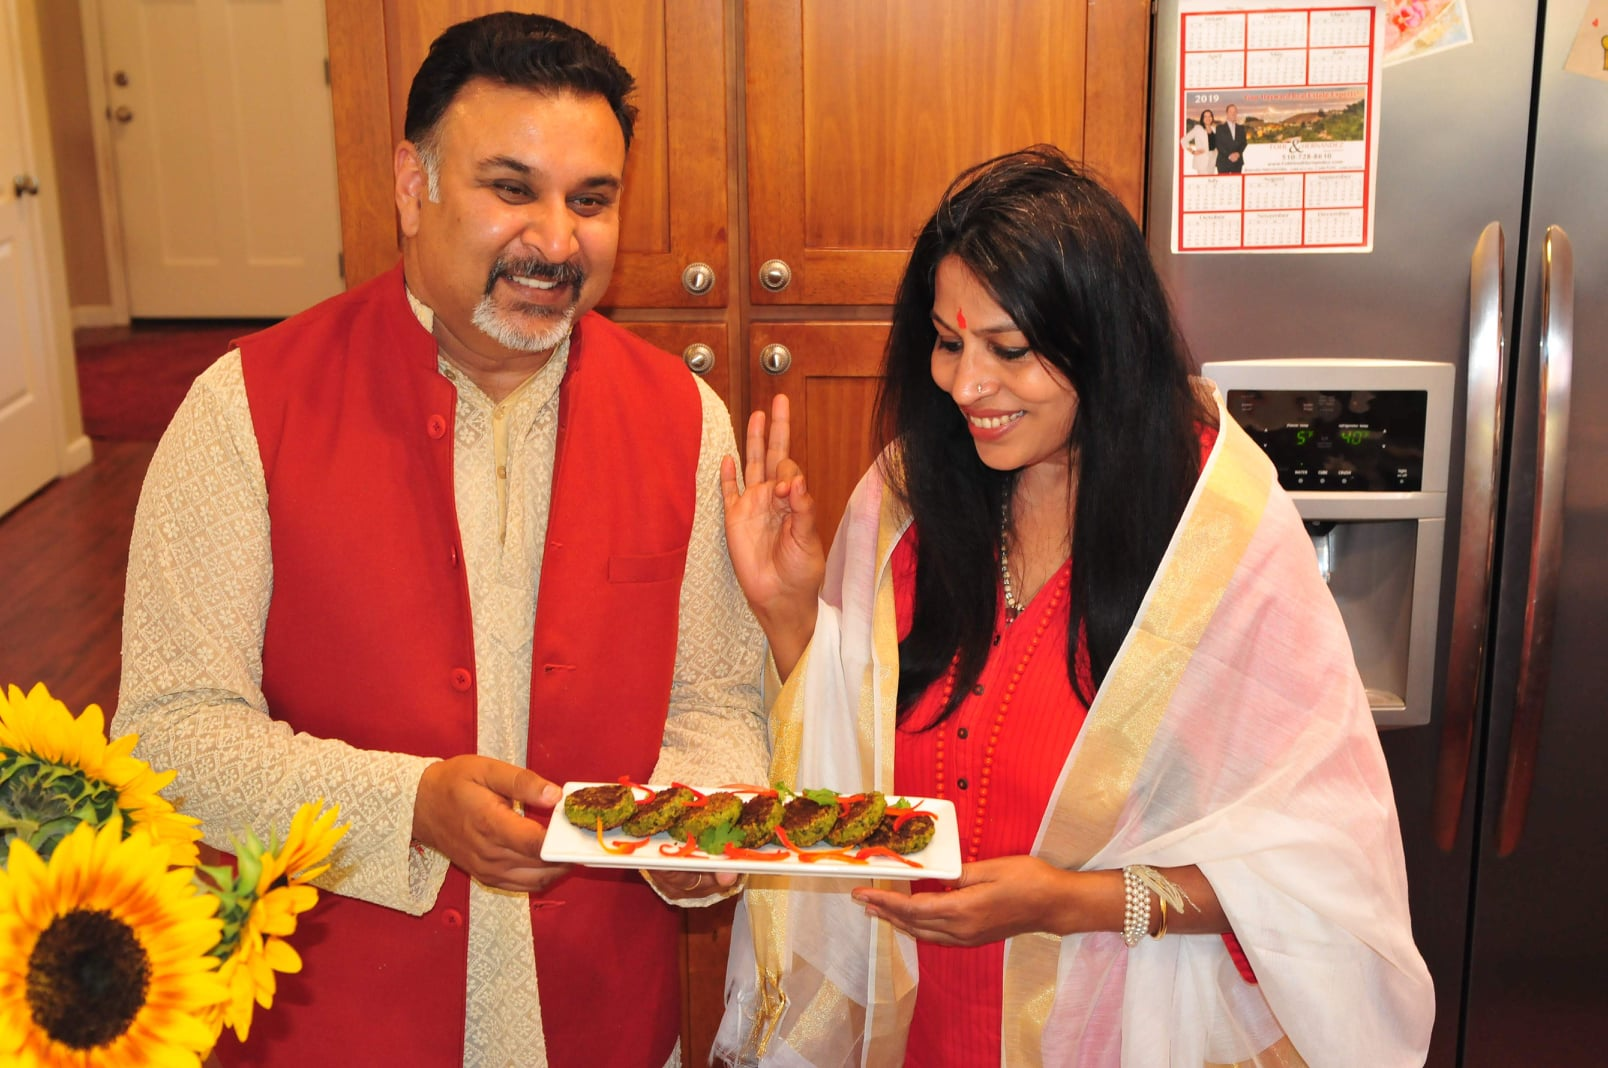 Acharya-Shunya-with-her-Chef-Husband-Sanjai